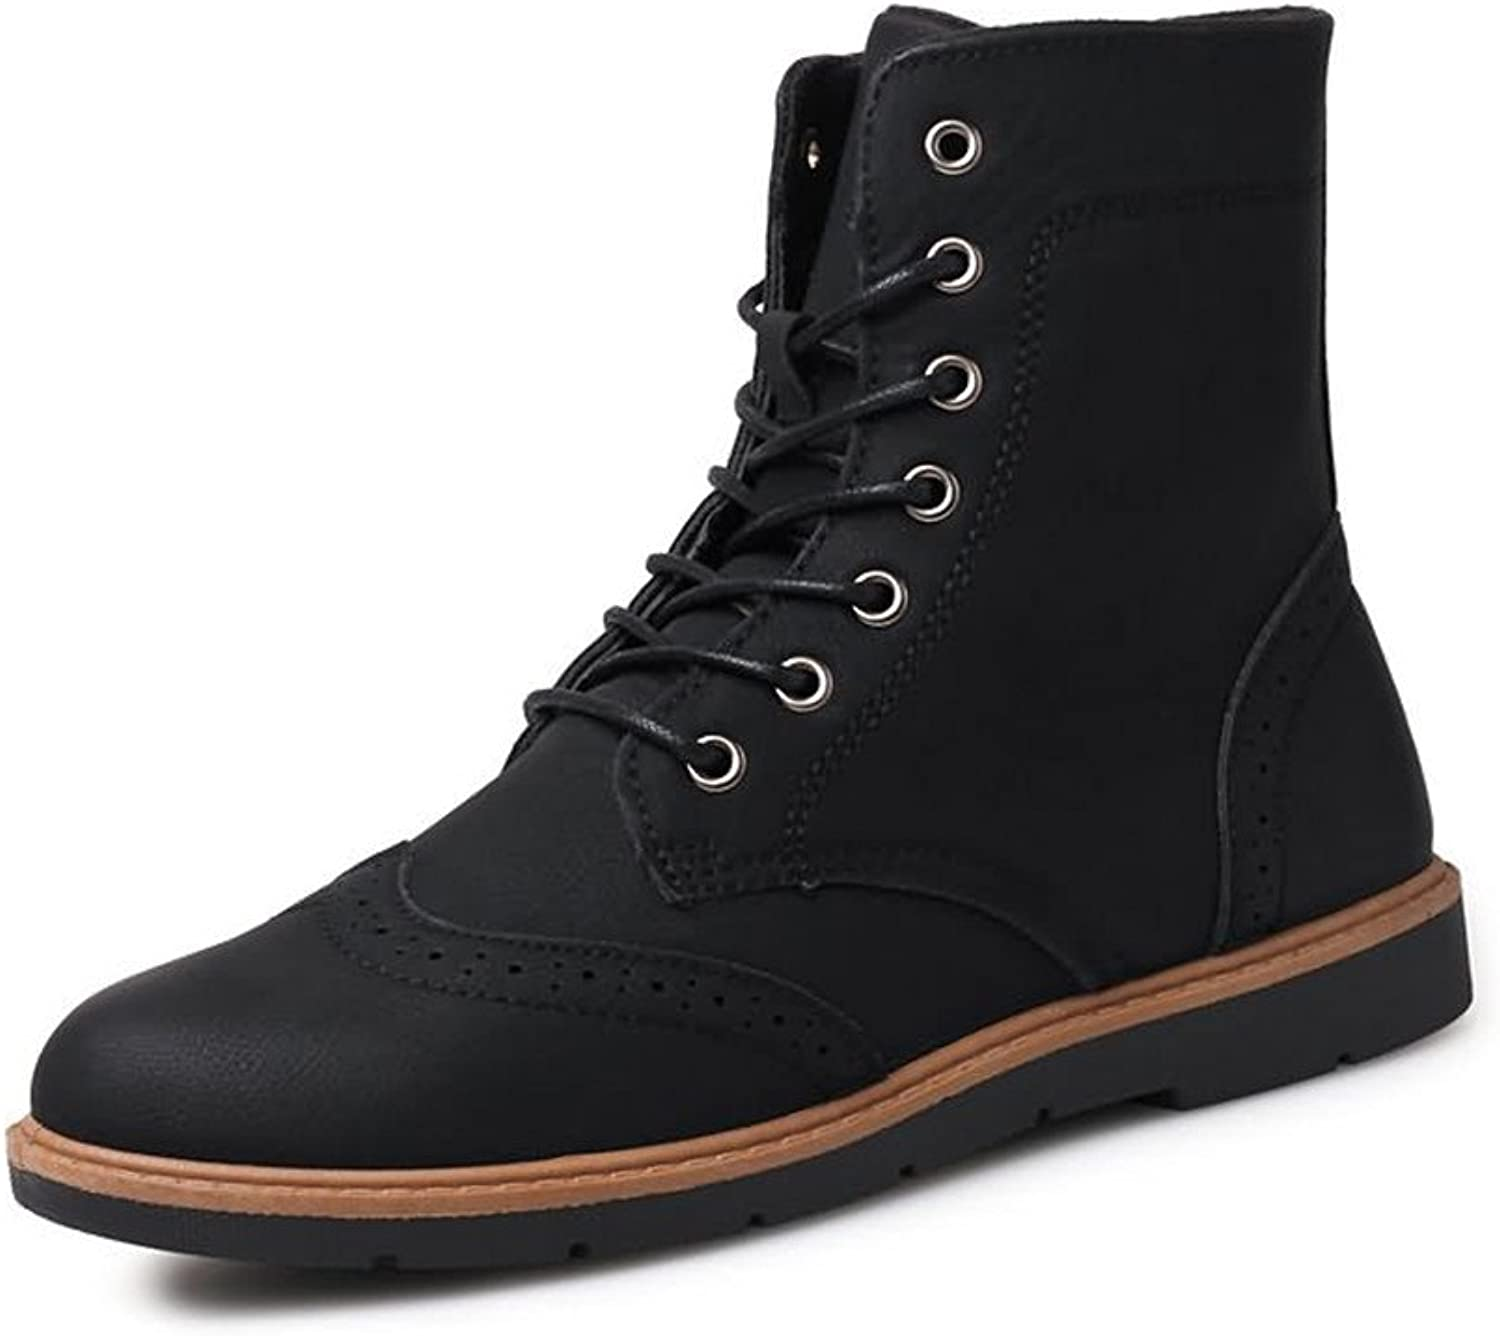 Men's Martin Boots Casual Inside Zip Front Laces with Cool Autumn Winter High Top Rider shoes Cricket shoes